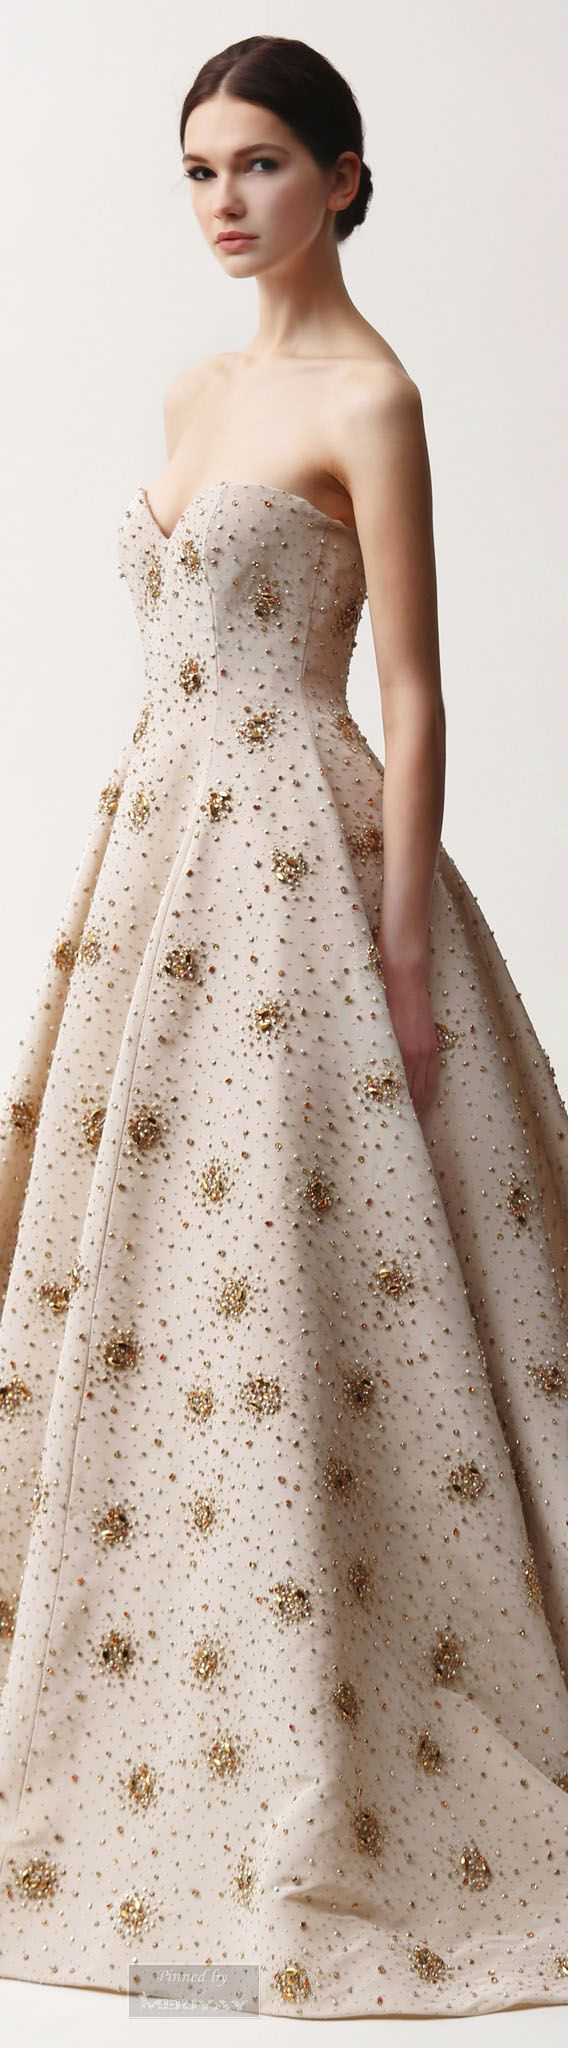 Naeem Khan.Pre-Fall 2015. Flawless princess, sweetheart neckline gown, with clusters of glittered gold.